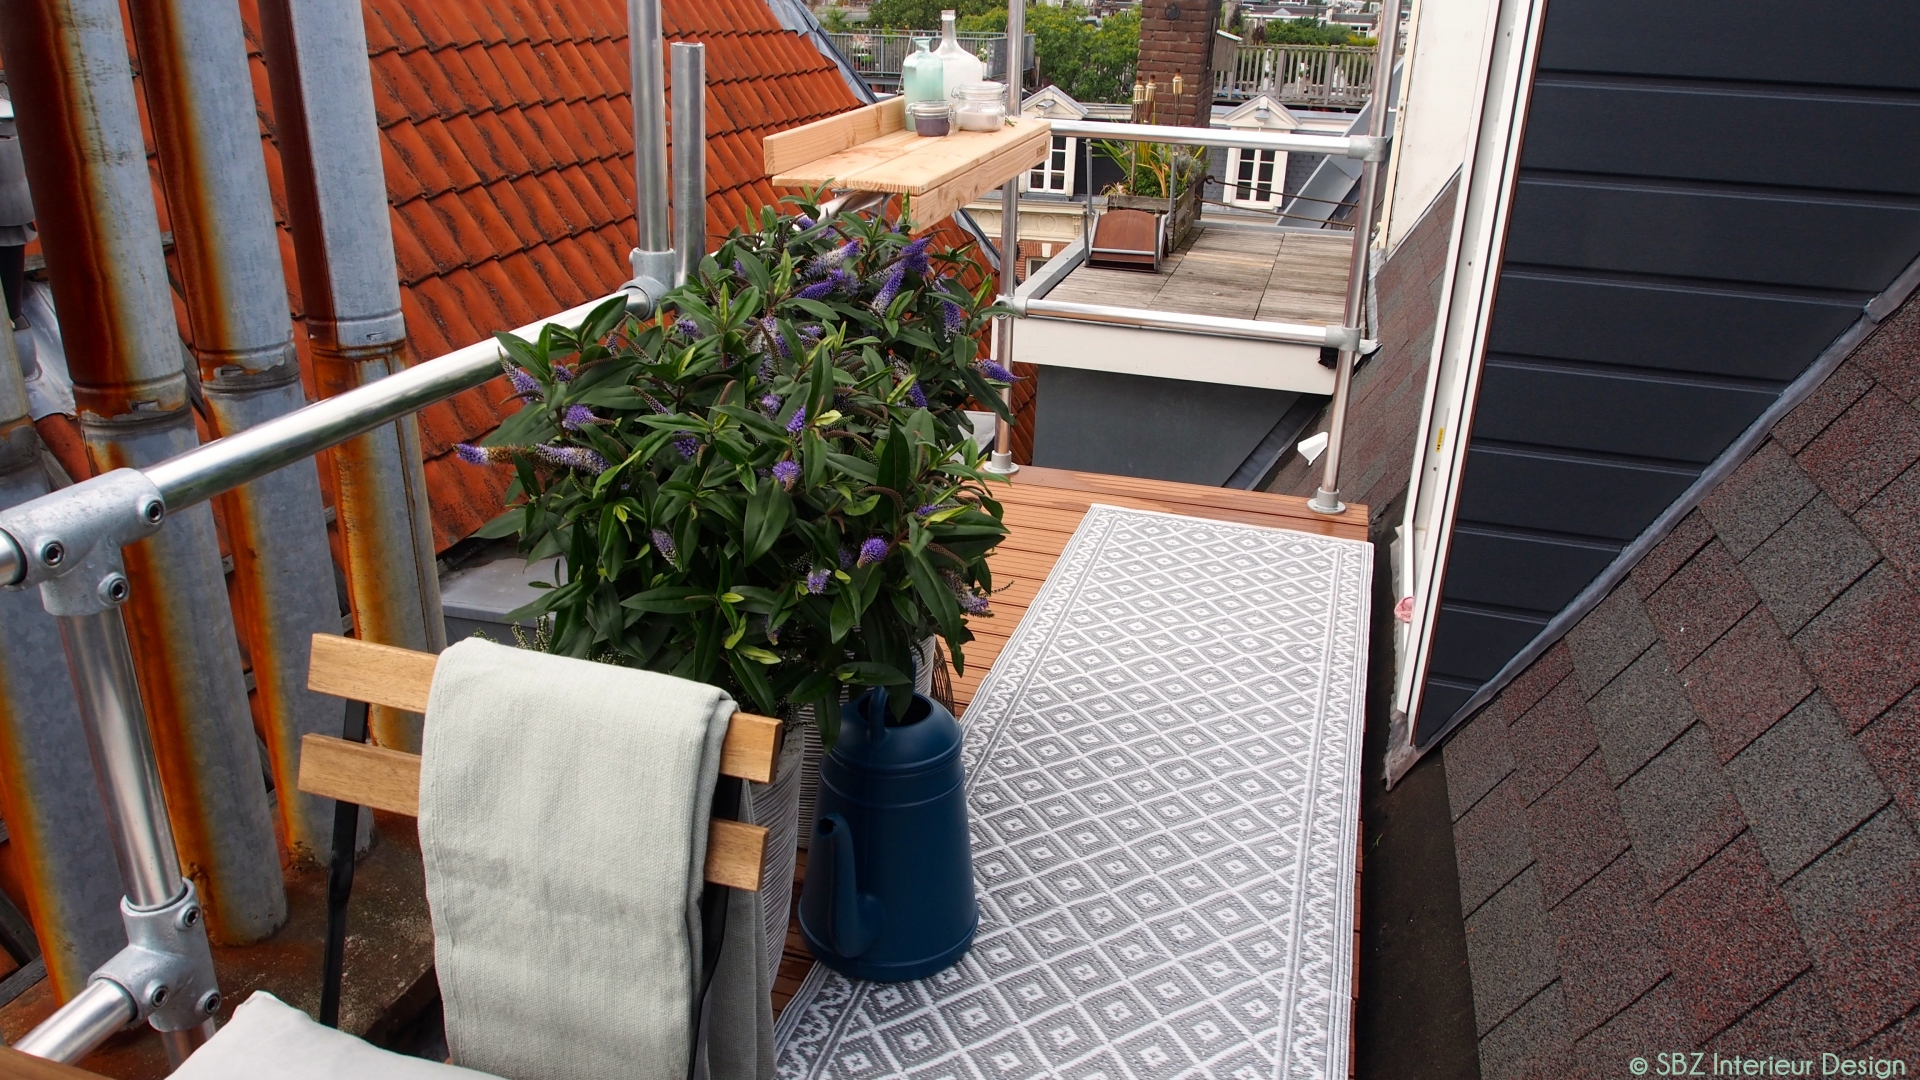 Dak terras inrichting styling amsterdam sbz for Interieur styling amsterdam